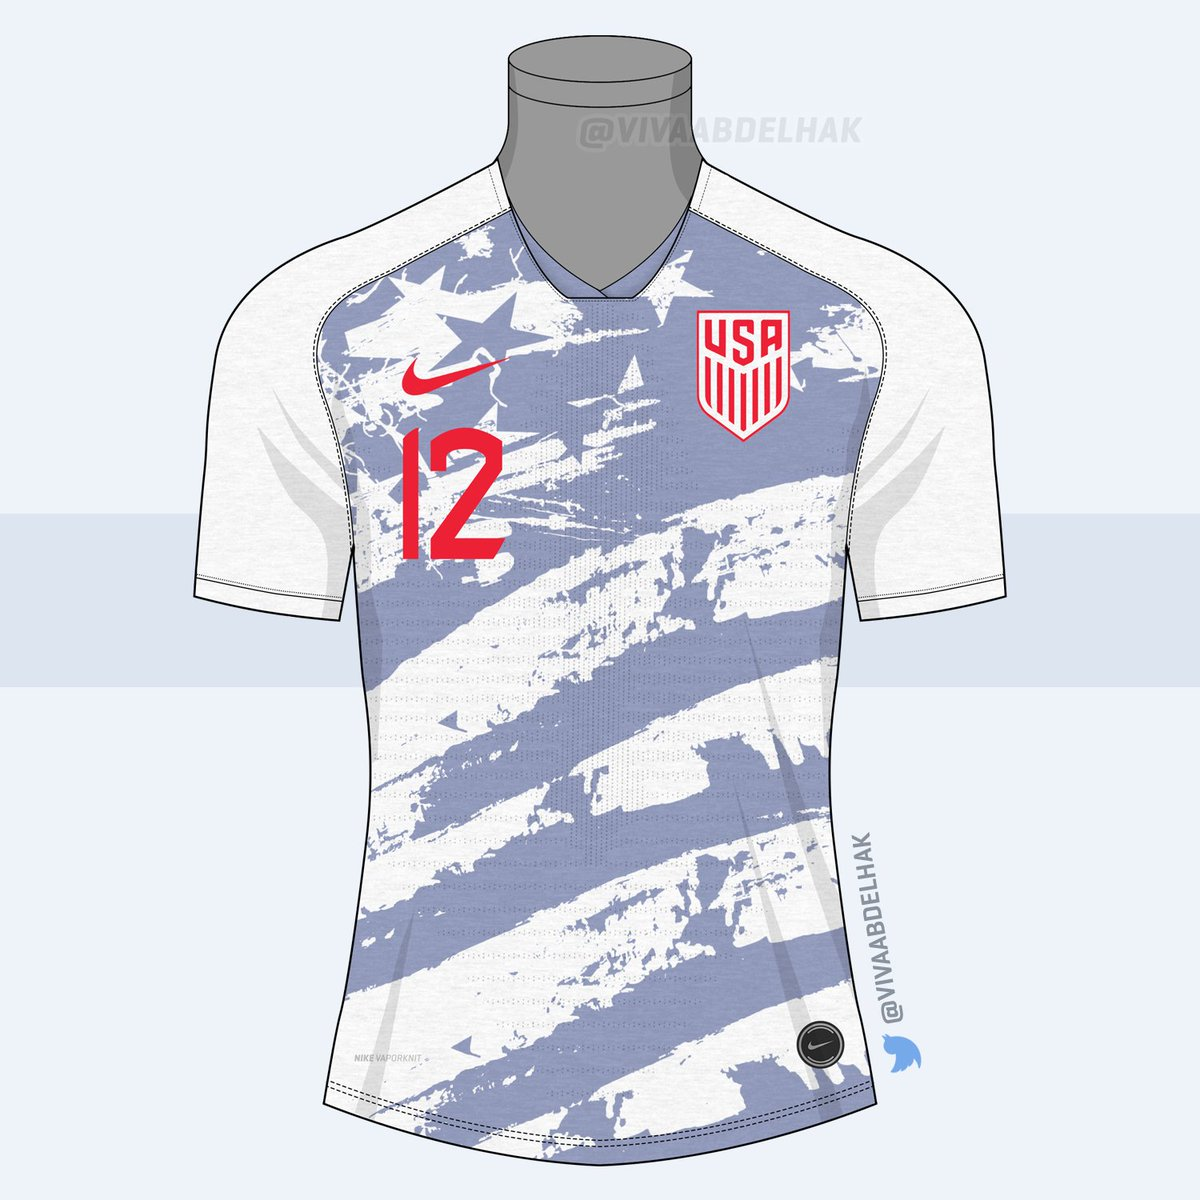 c65c00d0ebb Inspired by the infamous USA 1994 World Cup kit by Adidas, Vivaabdelhak's  USA concept is white with a grey Stars and Stripes graphic design.